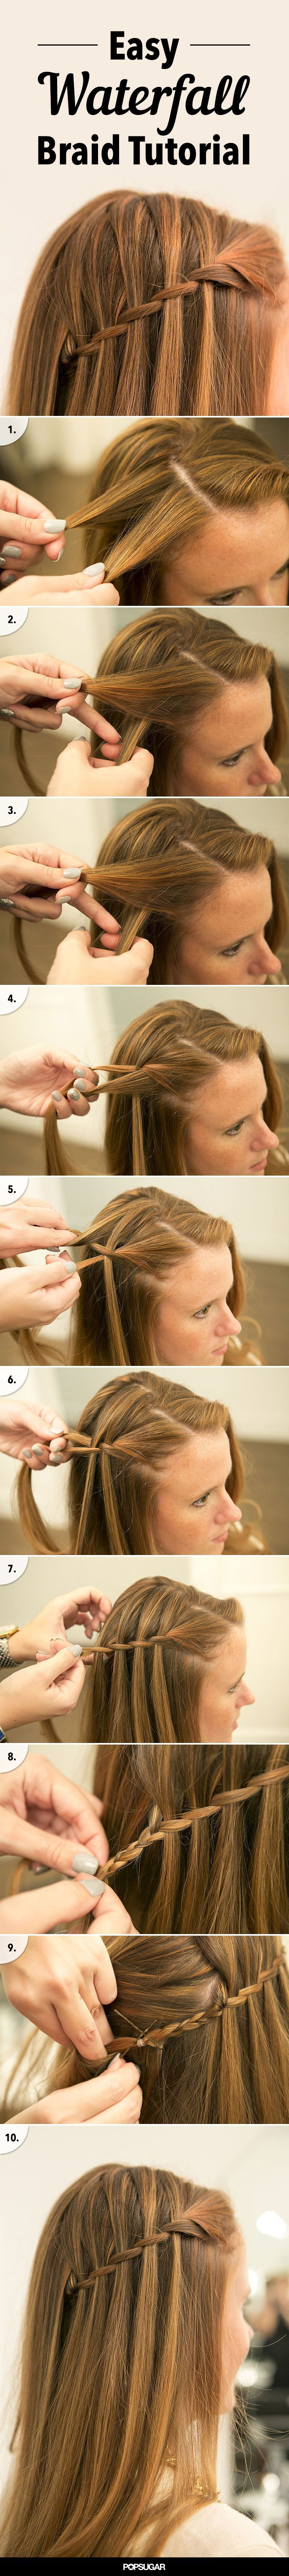 Learn How to DIY the Waterfall Braid Once and For All Eyebrow Makeup Tips